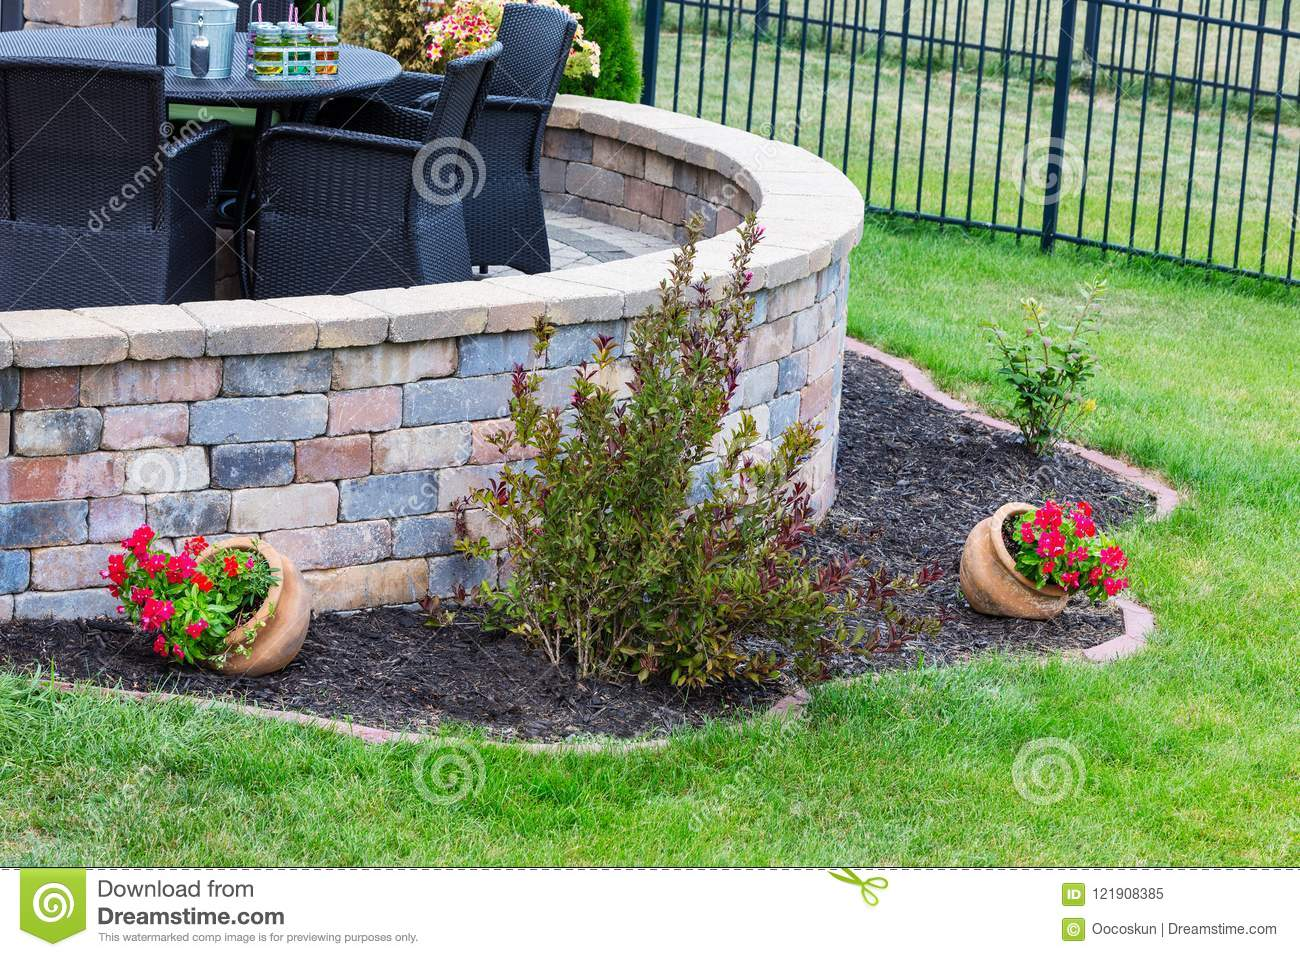 Curved Round Brick Wall On An Outdoor Patio